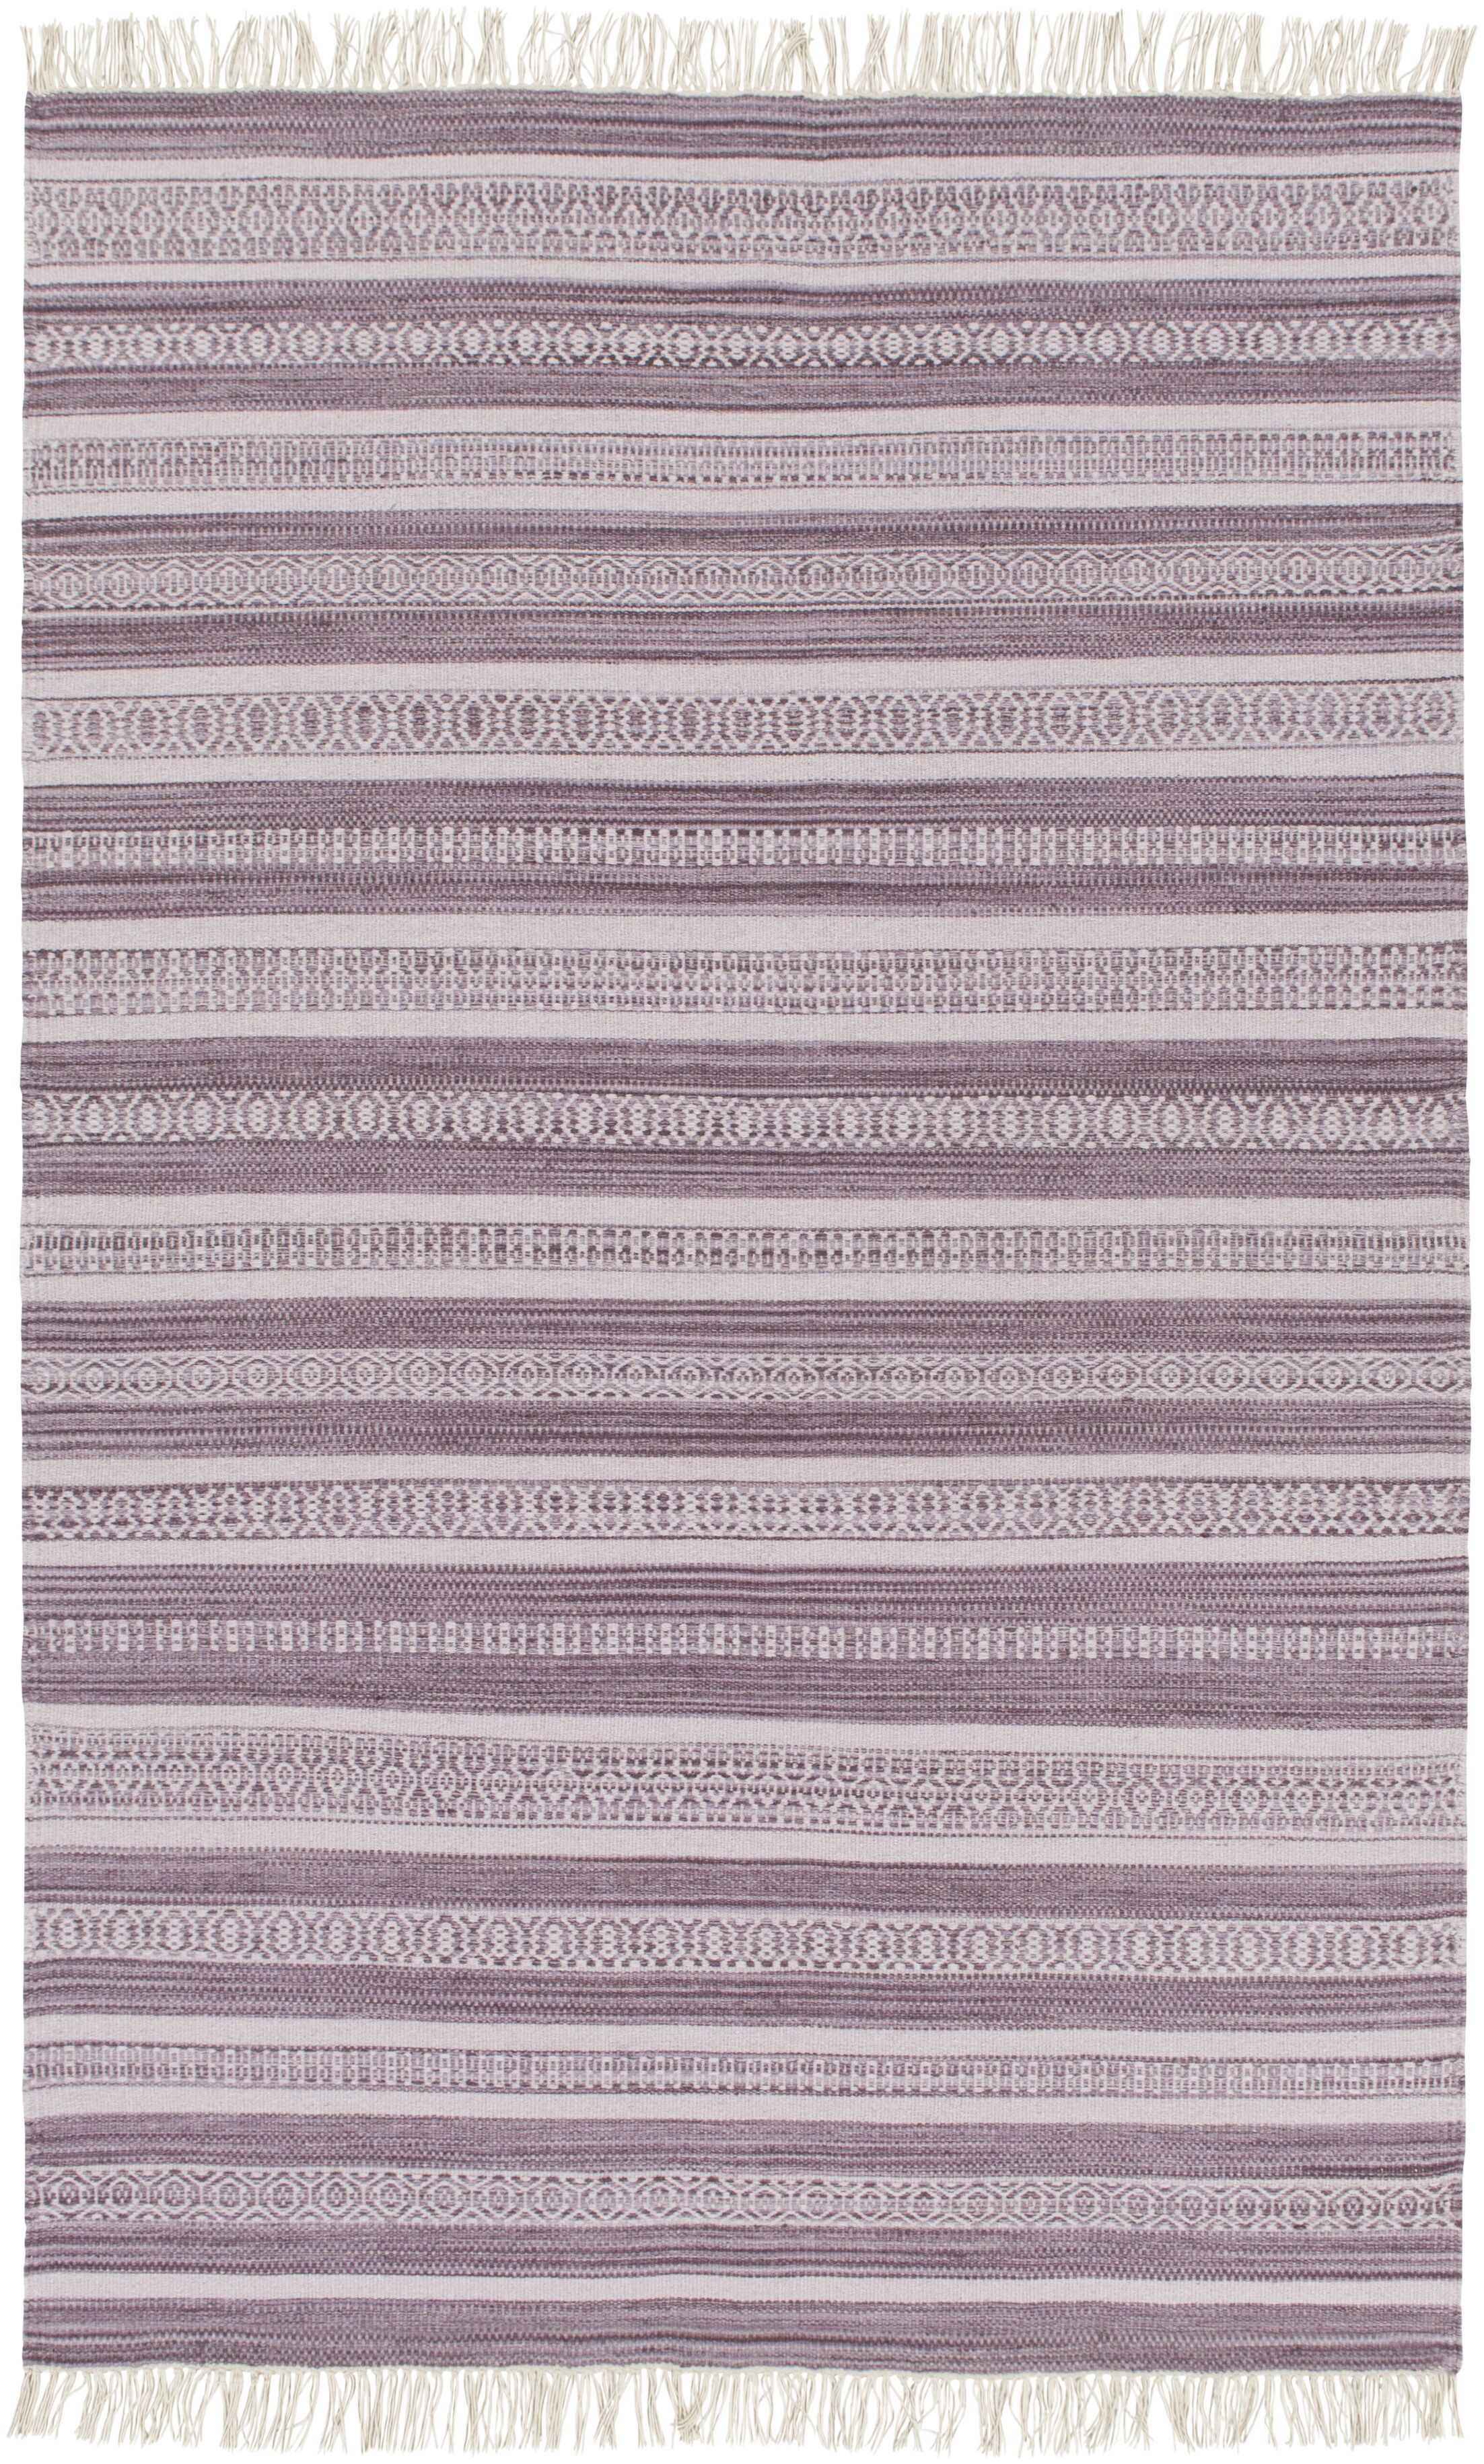 Nampa Hand Woven Cotton Lavender Area Rug Rug Size: Runner 2'6